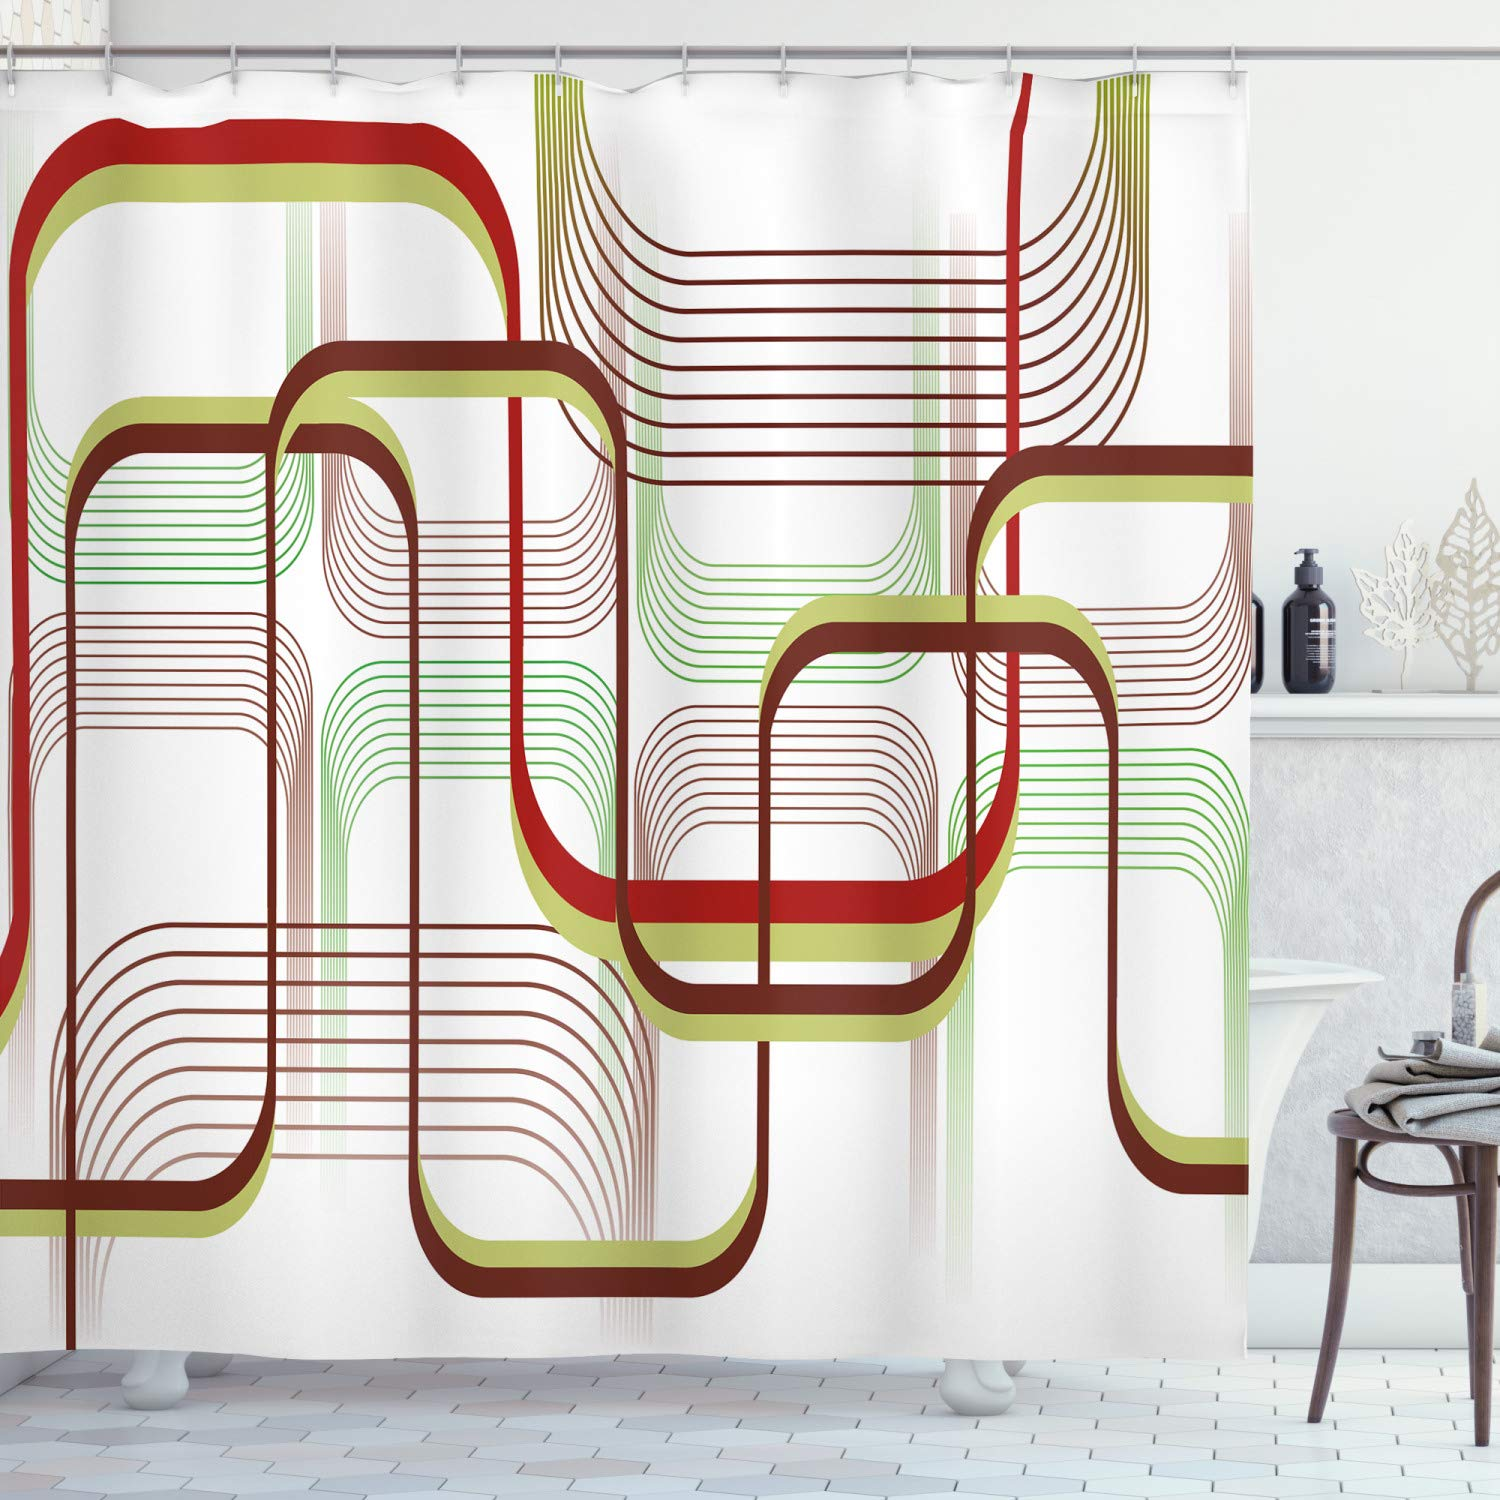 Ambesonne Modern Shower Curtain Geometric Contemporary Wavy Lines With Abstract Shapes Designs Art Image Cloth Fabric Bathroom Decor Set With Hooks 70 Long Khaki Burgundy Amazon In Home Kitchen